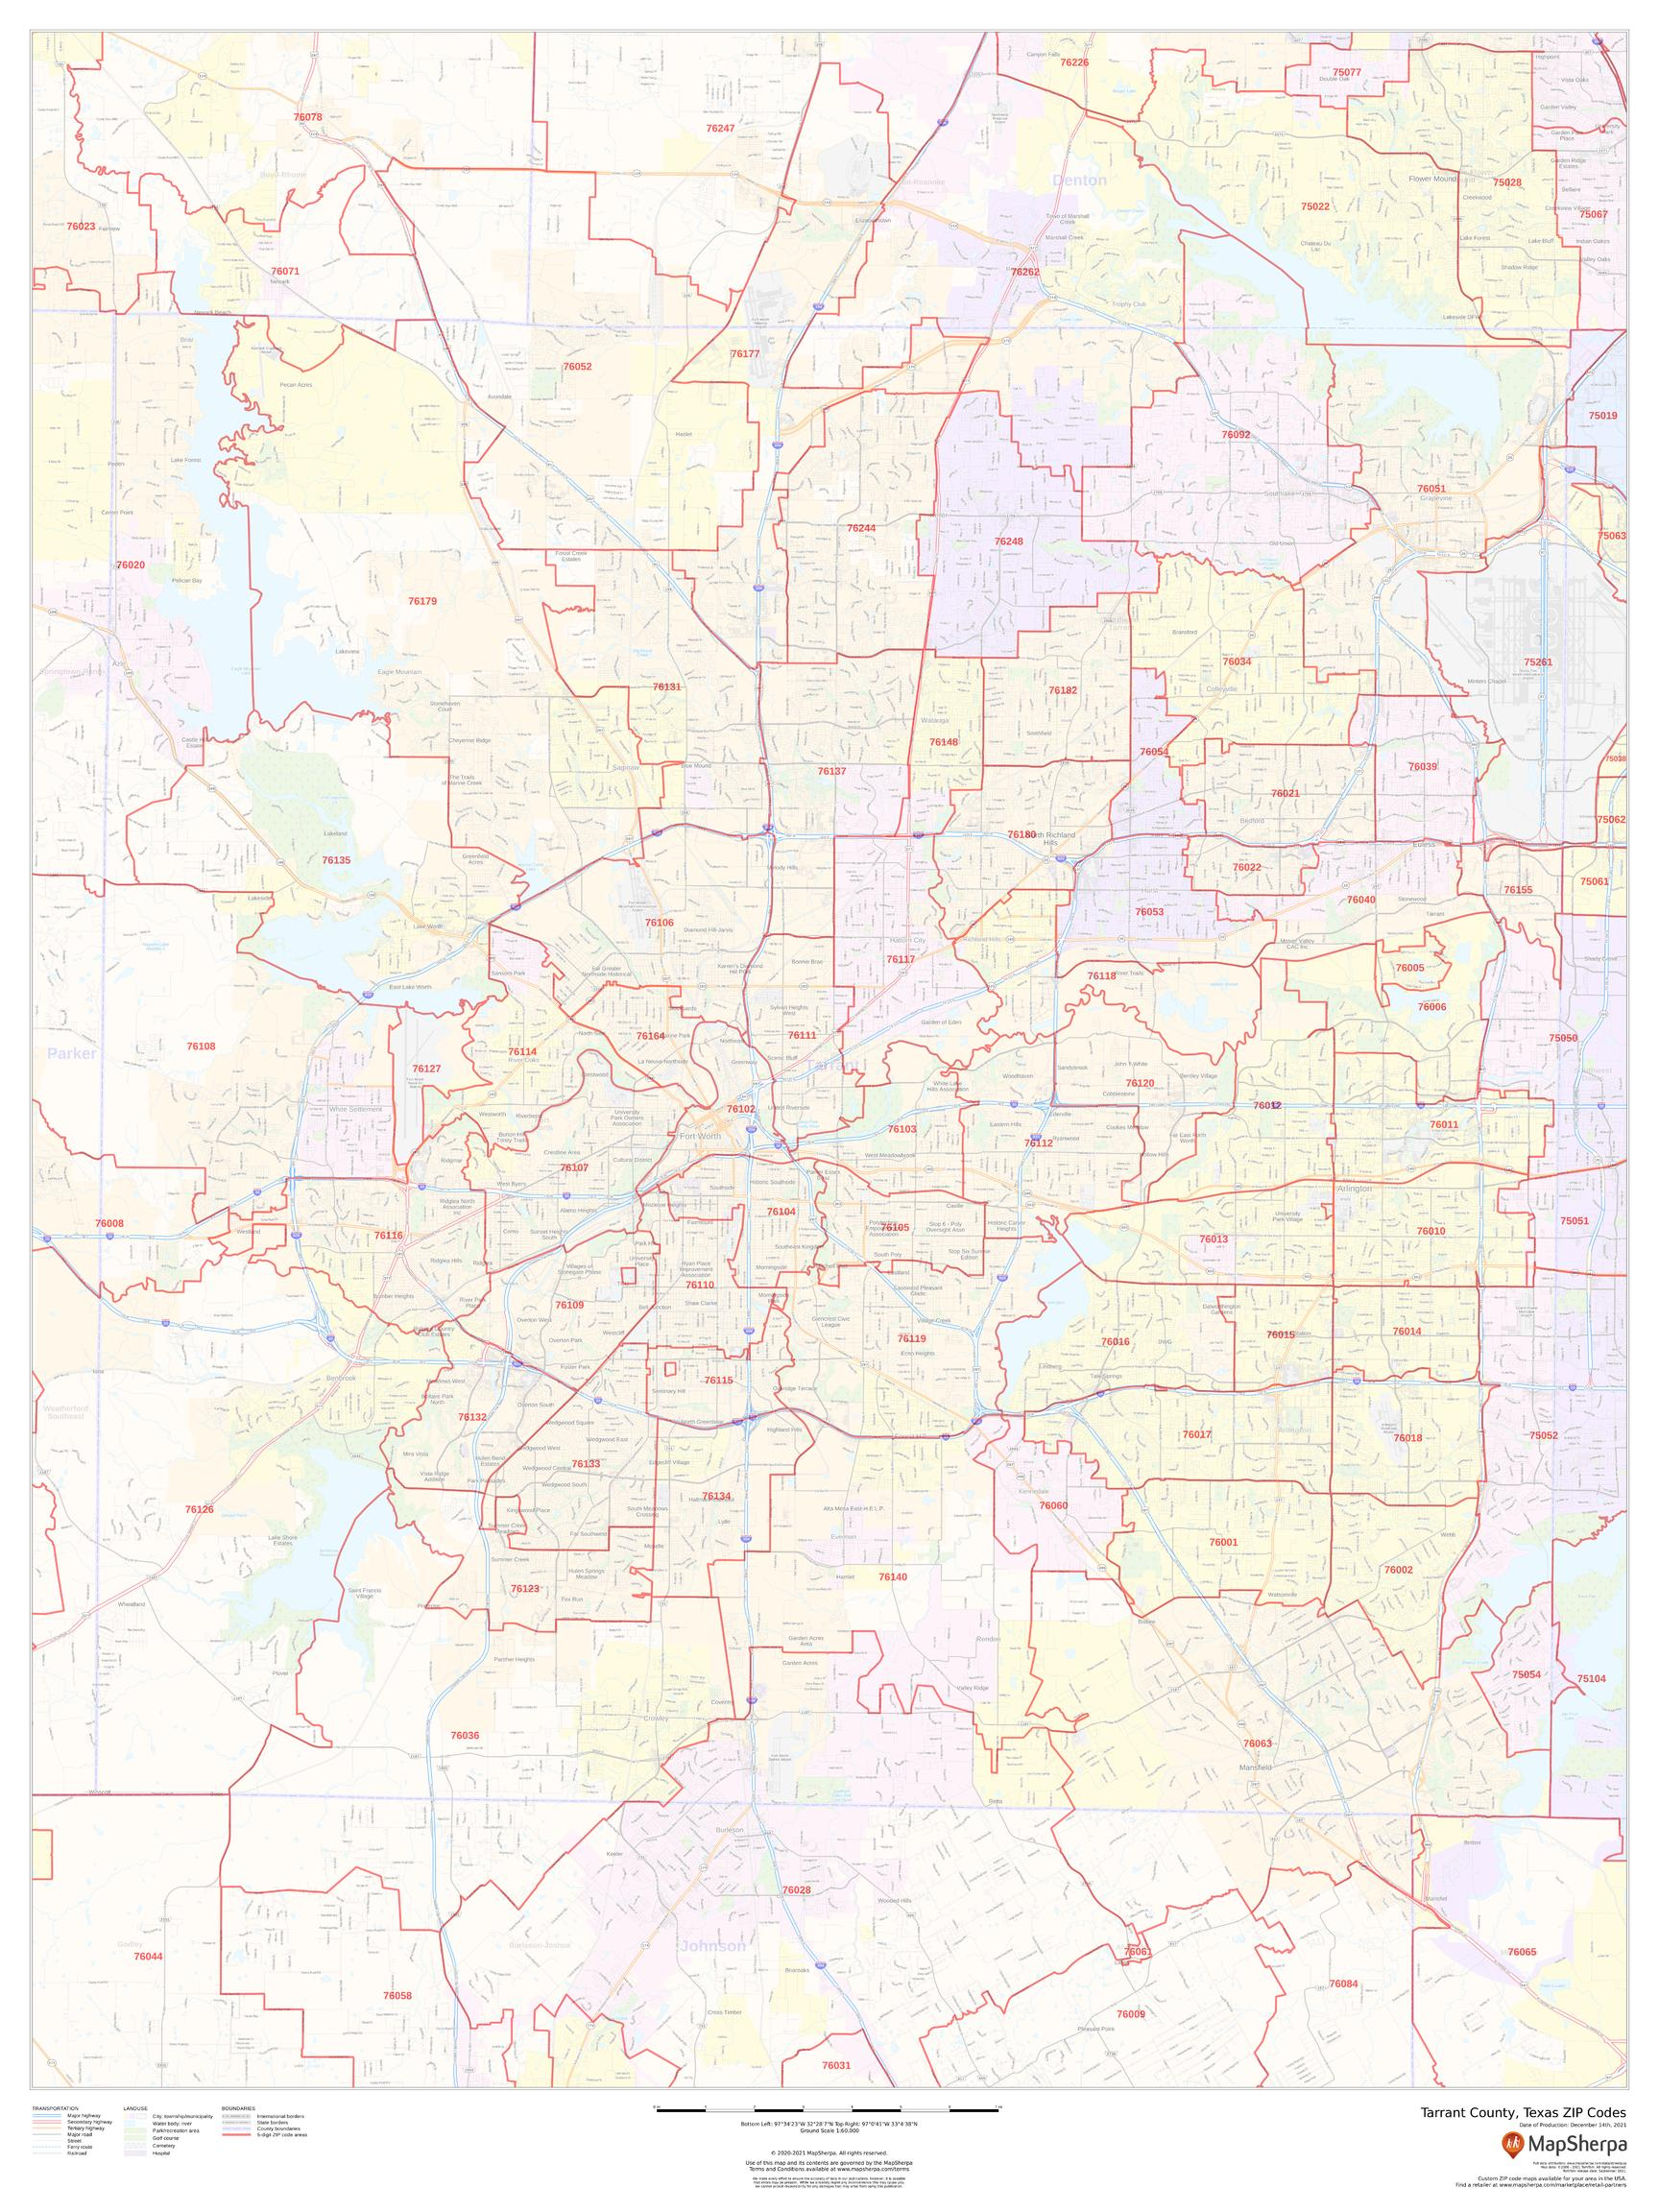 Tarrant County, Texas ZIP Codes on map of zip codes in charlotte, map of zip codes in austin, map of zip codes in el paso, map of zip codes in nevada, map of zip codes in tennessee, map of zip codes in nashville, map of zip codes in oklahoma, map of zip codes in louisiana, map of zip codes in plano, map of zip codes in maryland, map of zip codes in united states, map of zip codes in new jersey, map of zip codes in minnesota, map of zip codes in kentucky, map of zip codes in washington, map of zip codes in massachusetts, map of zip codes in little rock, map of zip codes in kansas, map of zip codes in iowa, map of zip codes in denver,